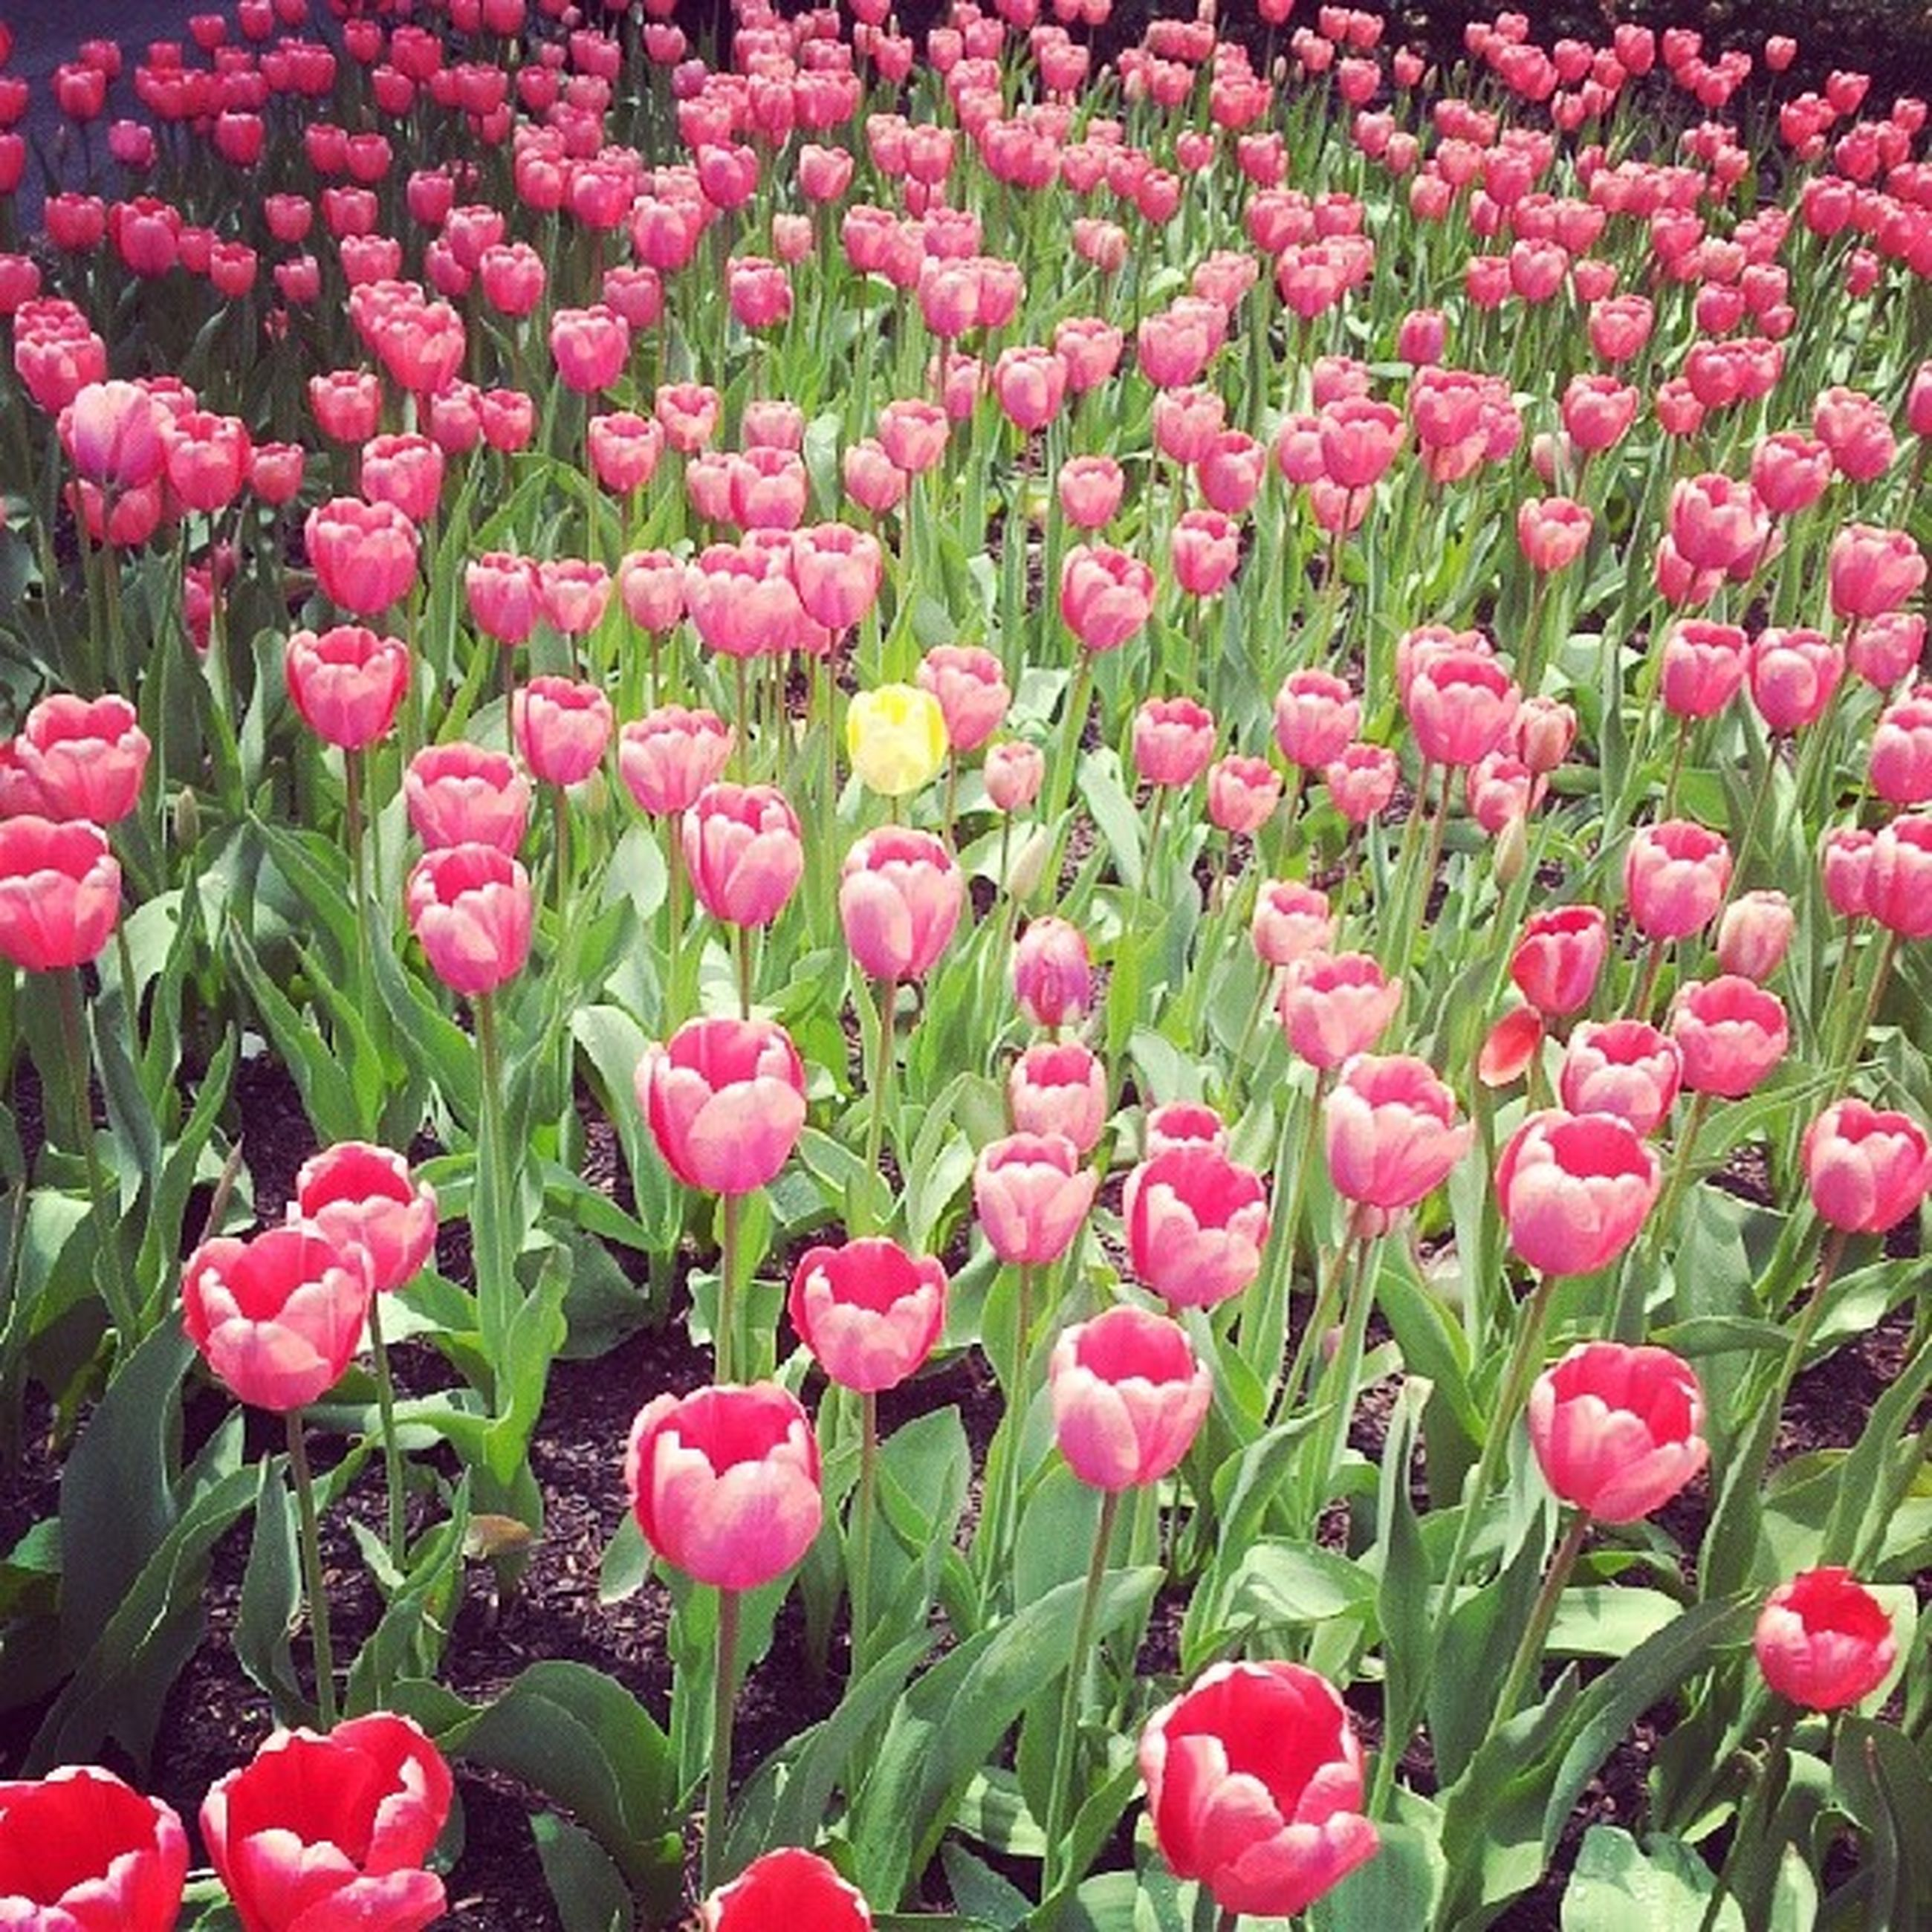 flower, freshness, growth, fragility, petal, beauty in nature, pink color, red, blooming, flower head, nature, plant, field, abundance, full frame, tulip, backgrounds, high angle view, in bloom, outdoors